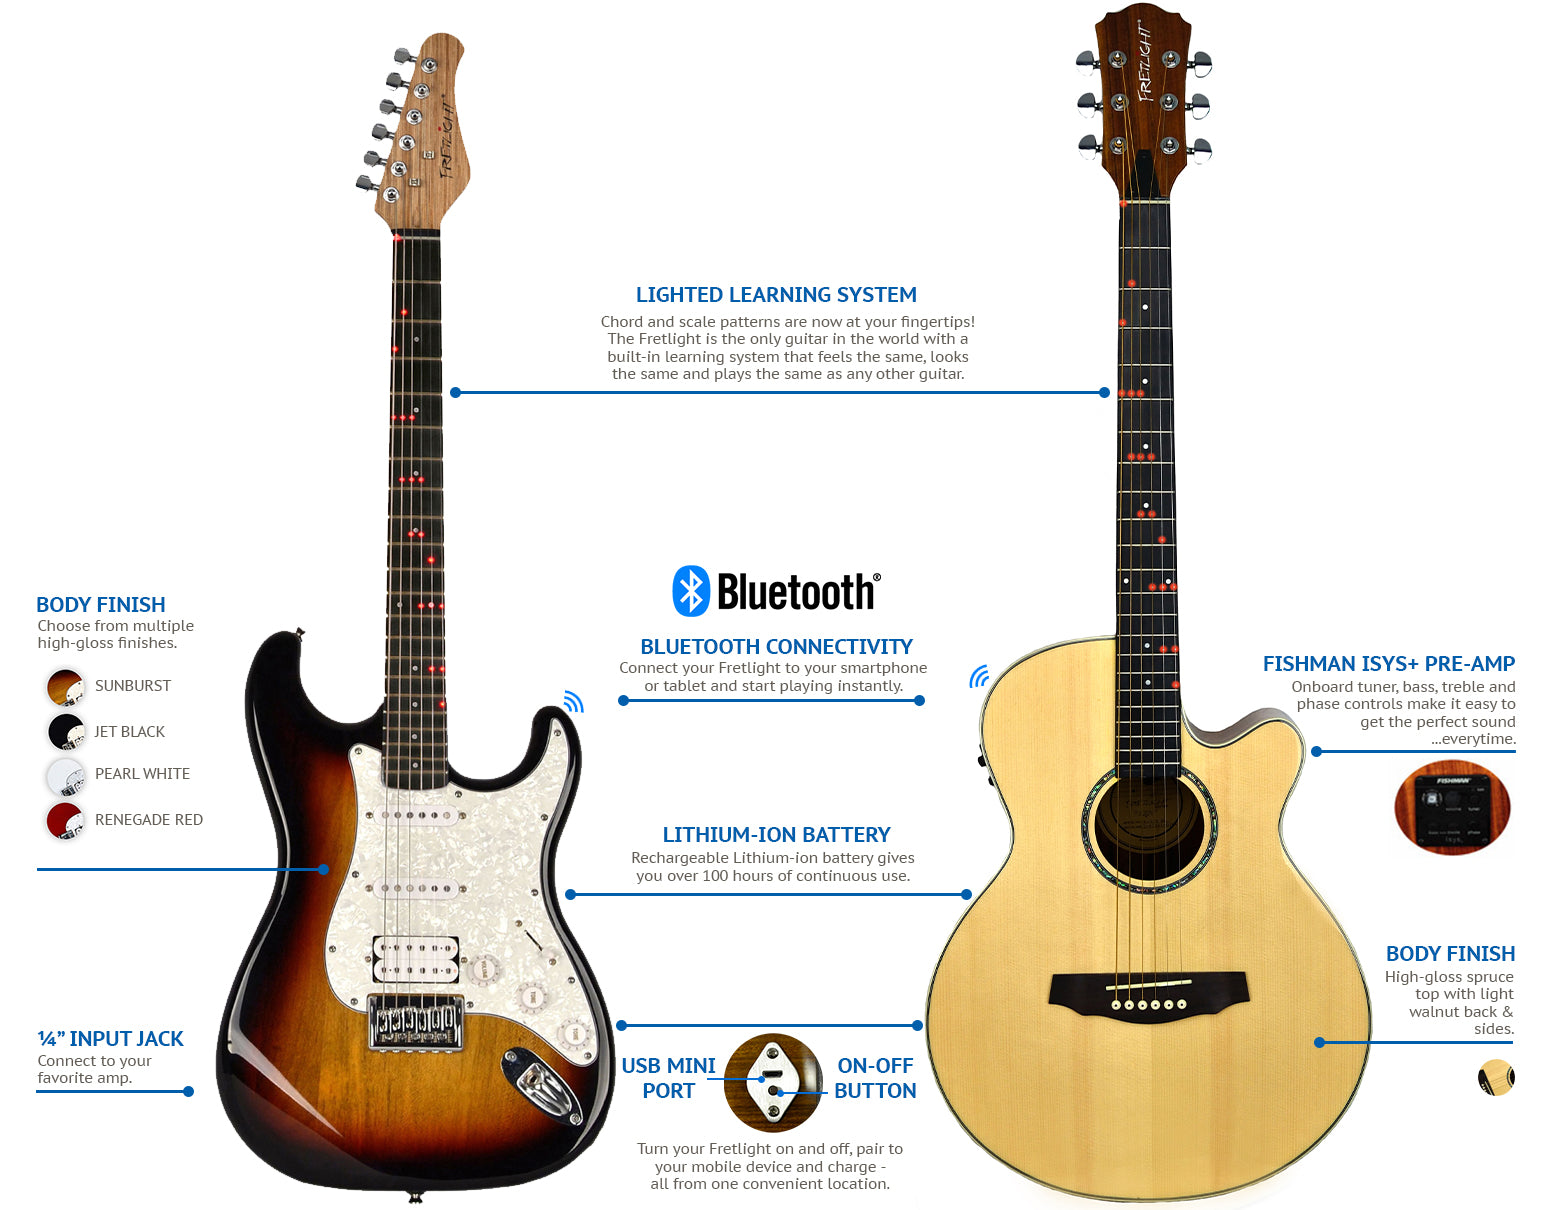 fretlight wireless store the fretlight wireless guitar store. Black Bedroom Furniture Sets. Home Design Ideas